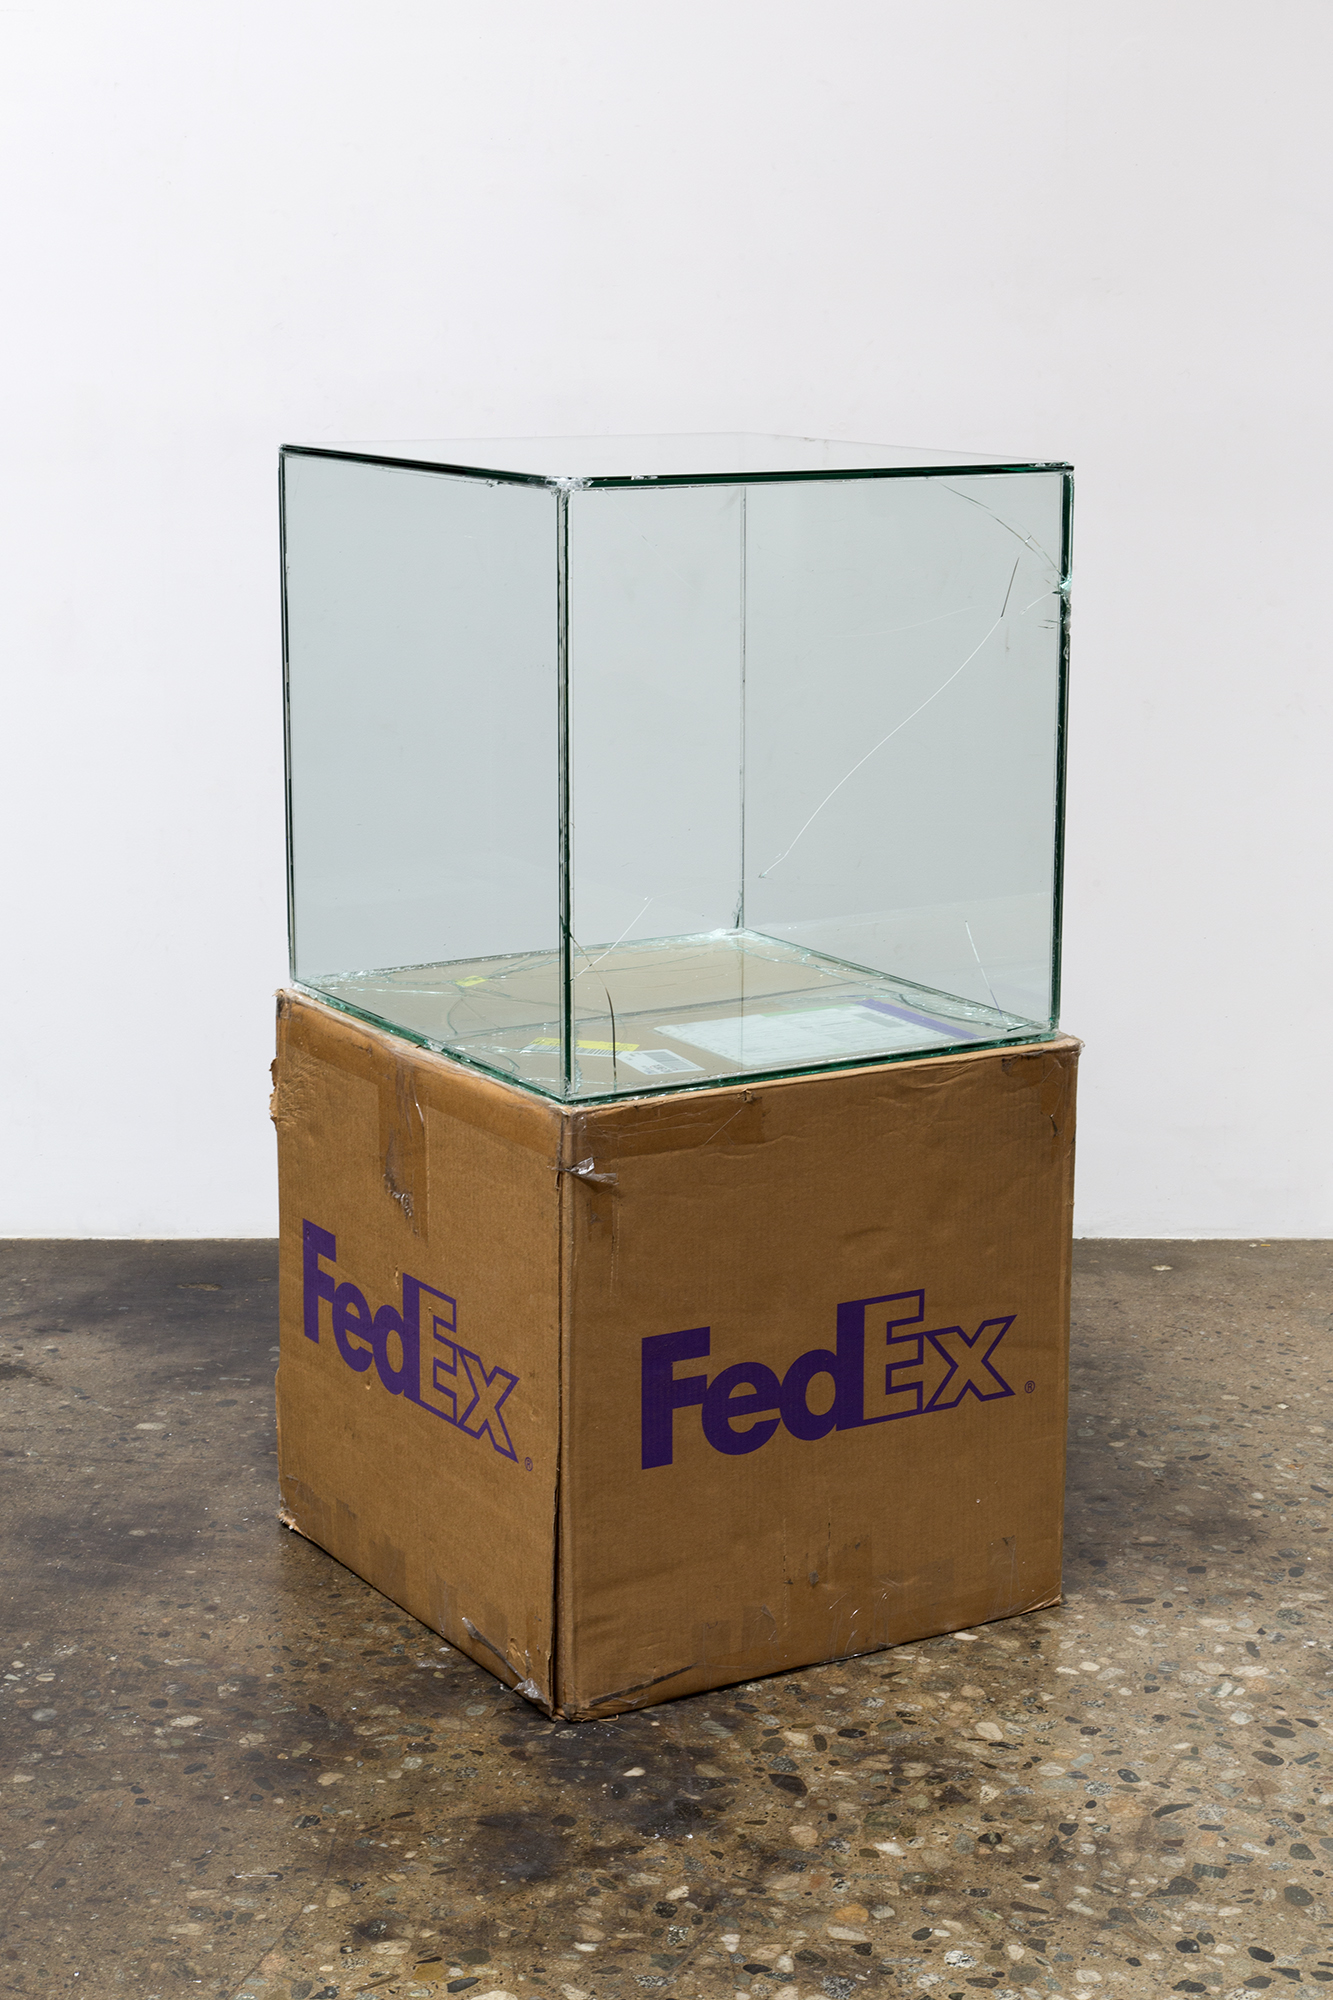 FedEx® Large Kraft Box  © 2008 FEDEX 330510 REV 6/08 GP, International Priority, Los Angeles–Tokyo trk#778608512056, March 9–13, 2017    2017–   Laminated glass, FedEx shipping box, accrued FedEx shipping and tracking labels, silicone, metal, tape  24 x 24 x 24 inches   Transparencies, 2017